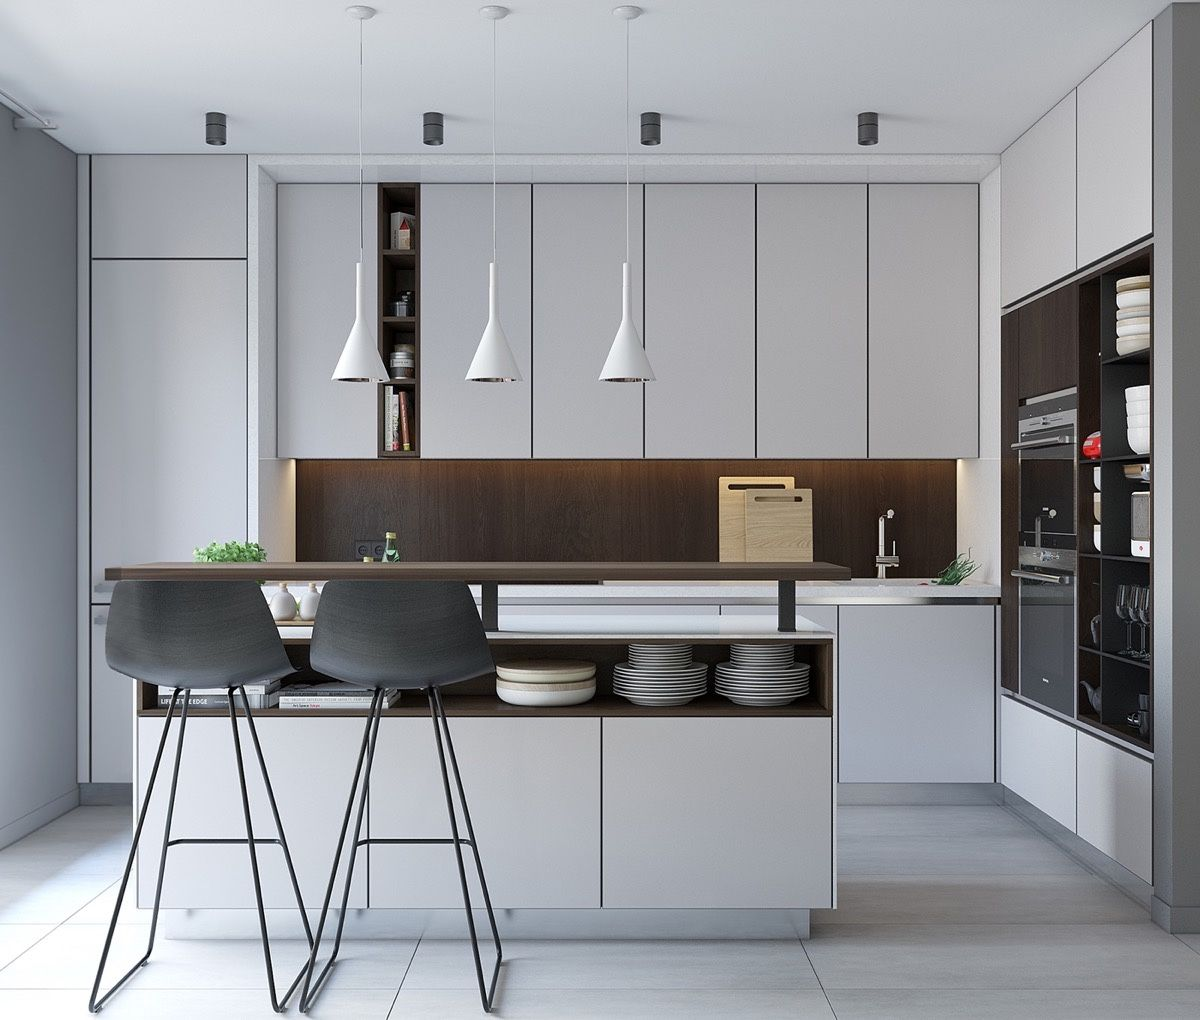 Kitchen Design 40 Minimalist Kitchens To Get Super Sleek Inspiration Kitchen